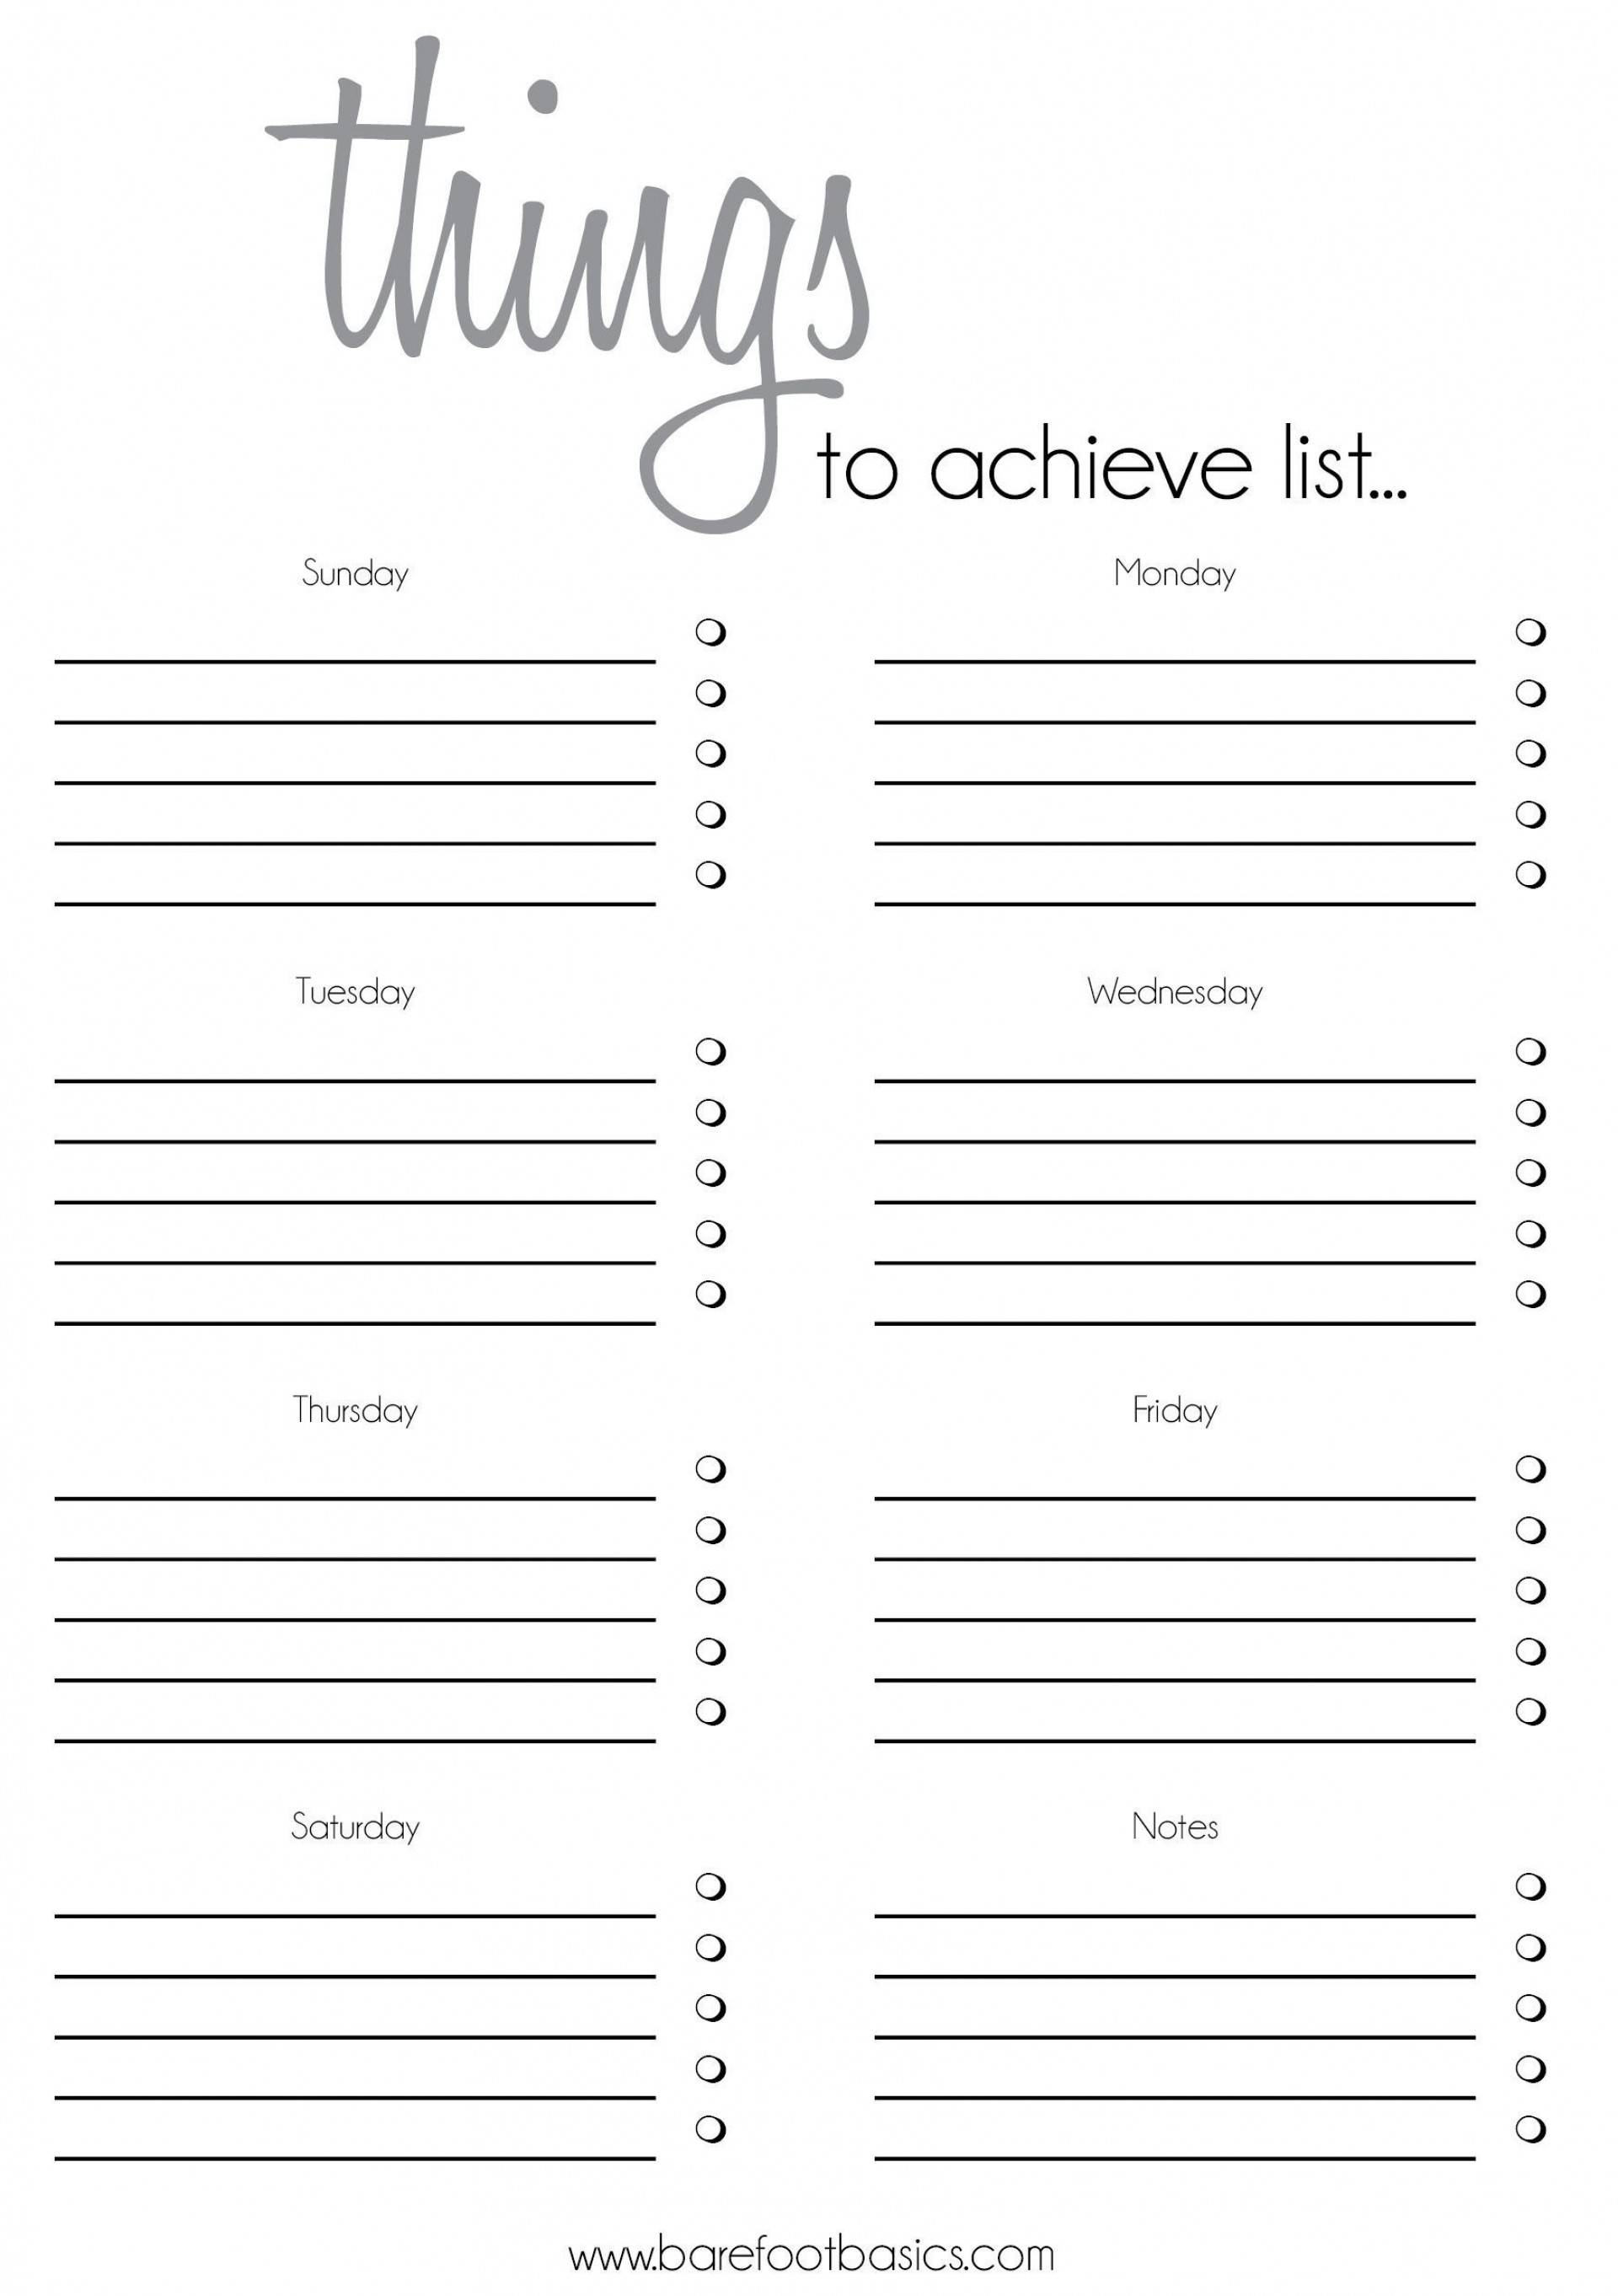 003 Formidable To Do List Template Free Idea 1920